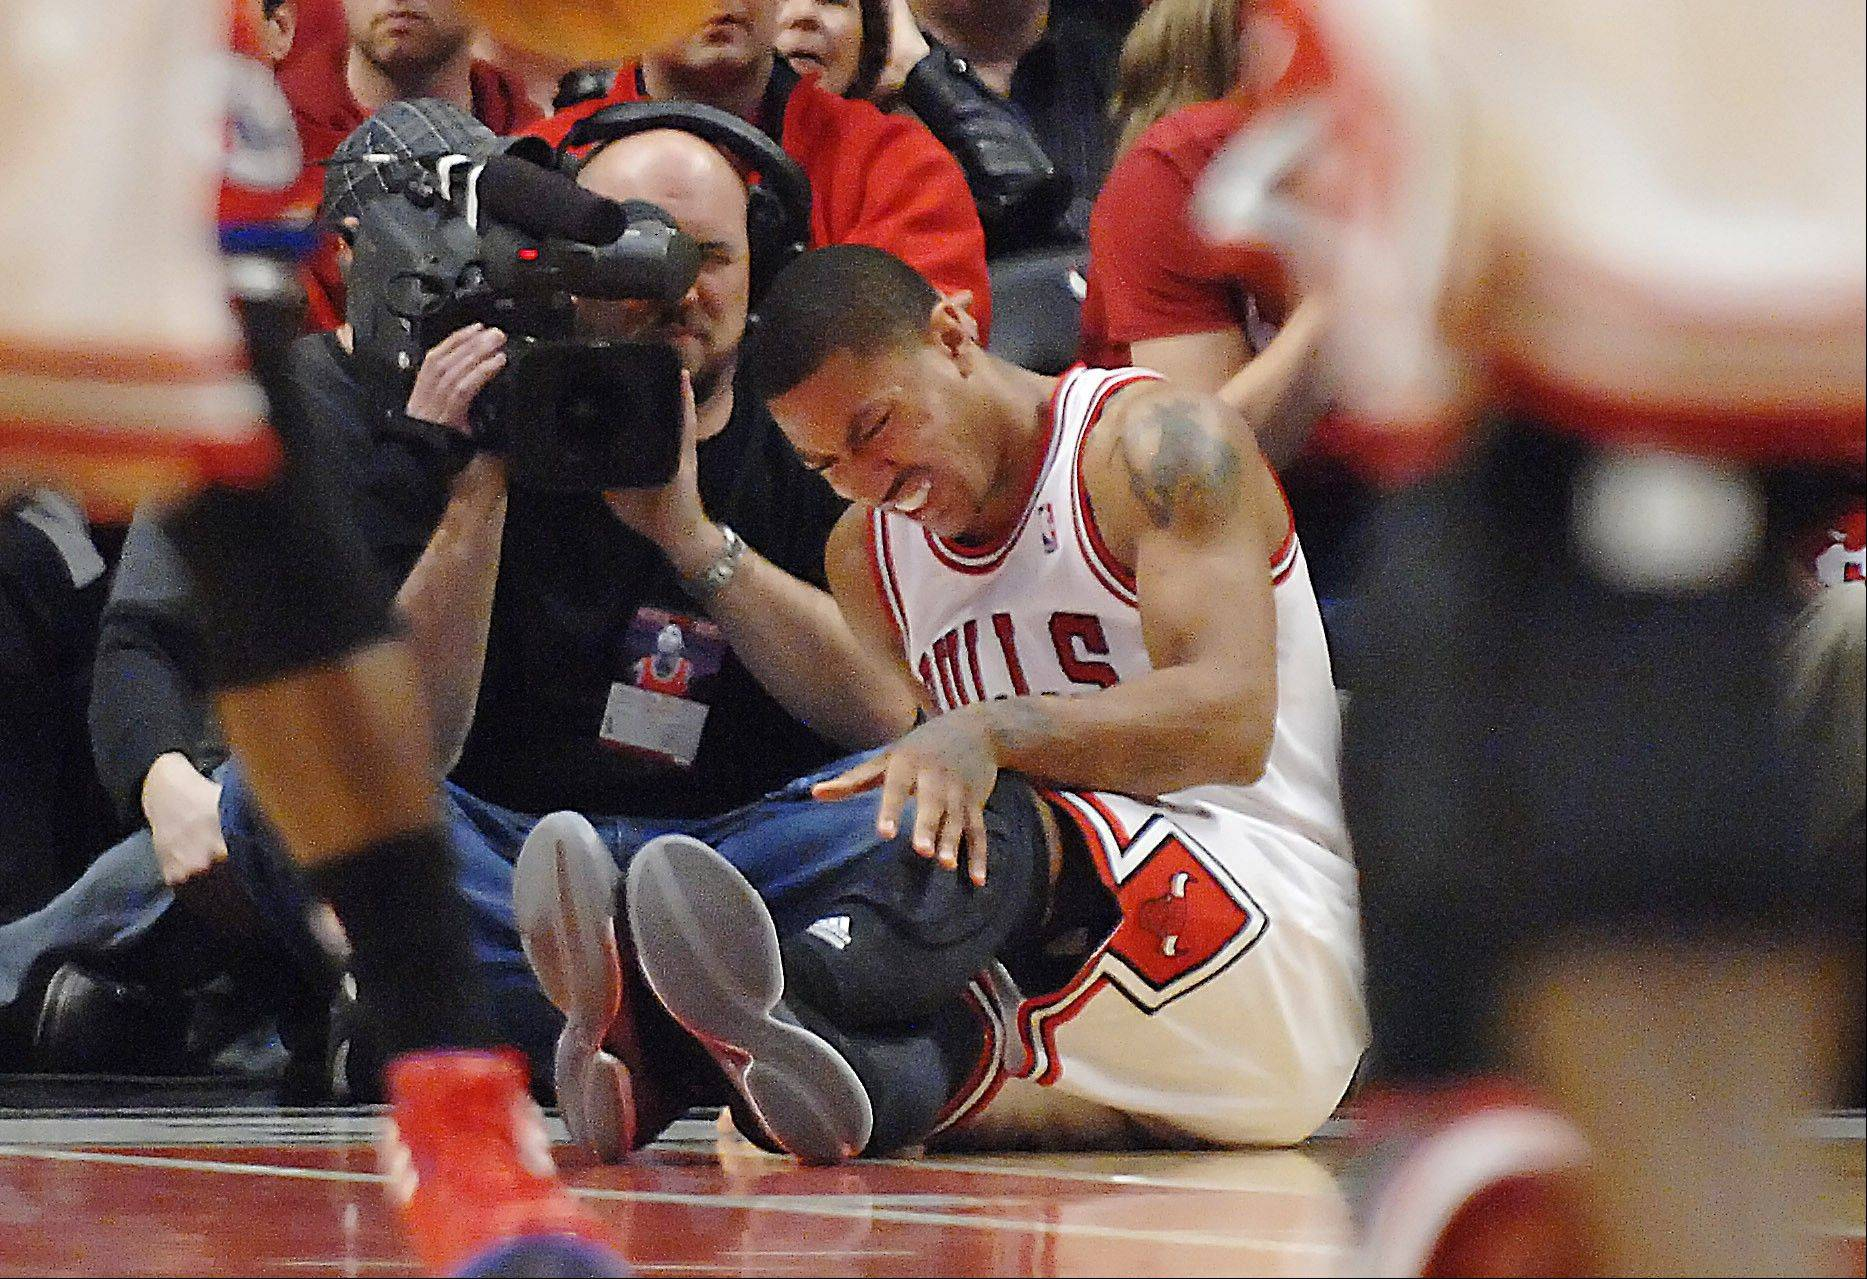 Bulls point guard Derrick Rose reacts after injuring his knee in the fourth quarter of Game 1 against the Philadelphia 76ers Saturday.